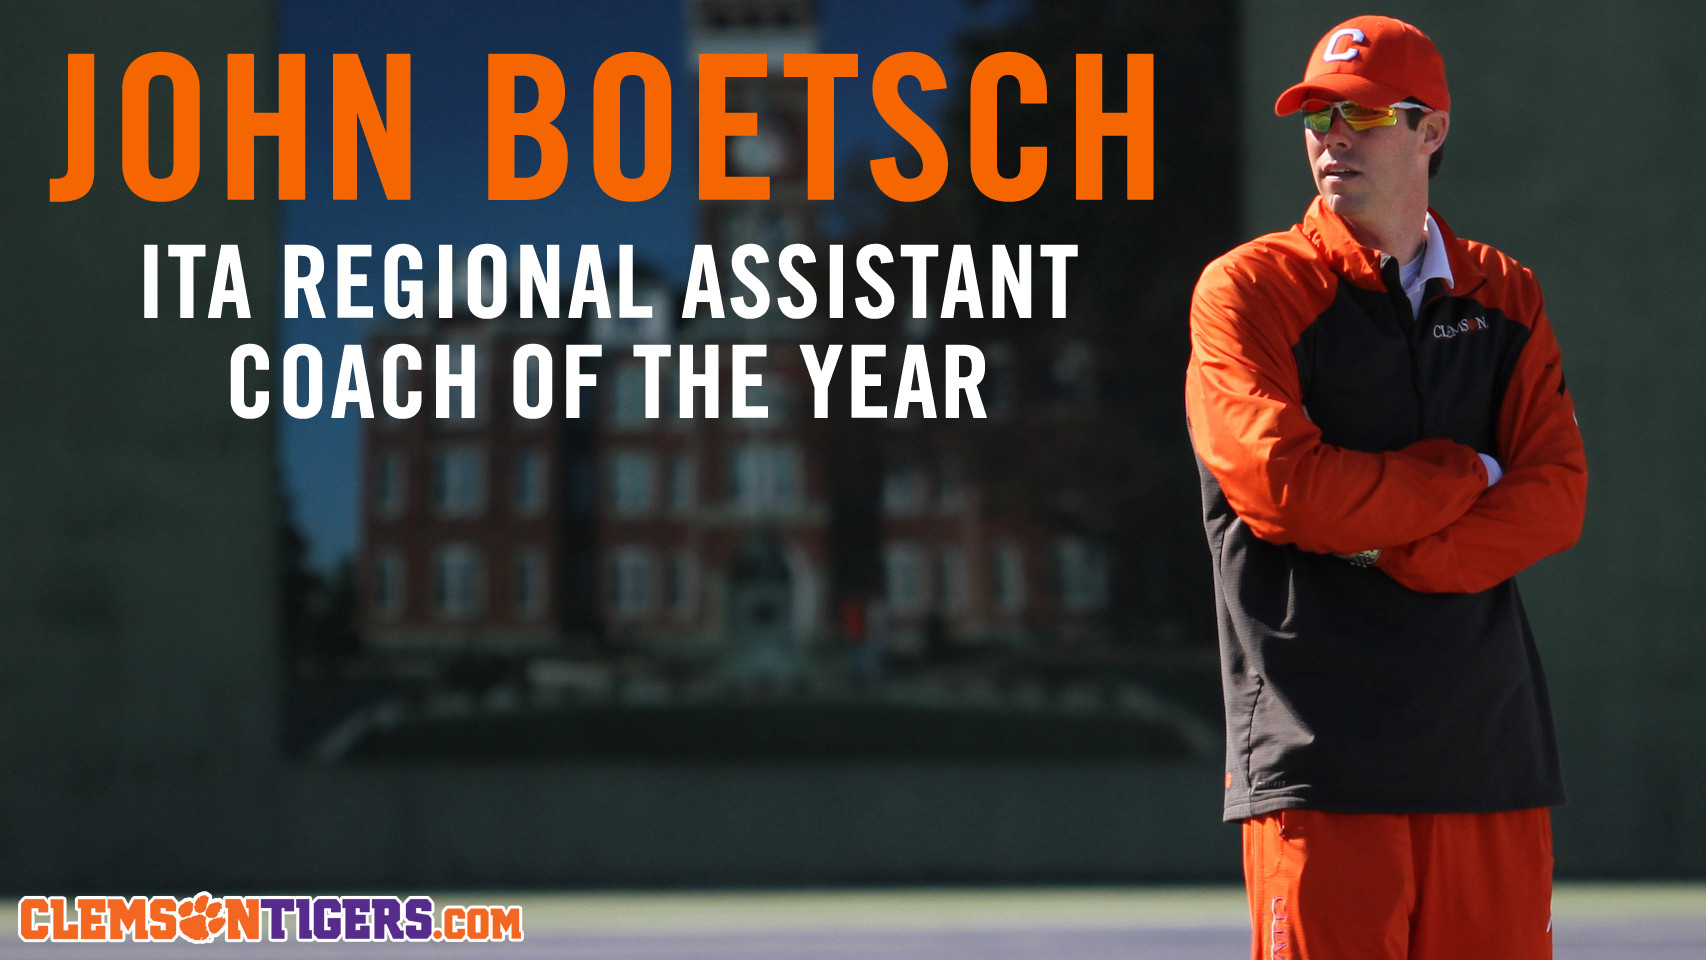 Boetsch Named ITA Regional Assistant Coach of the Year